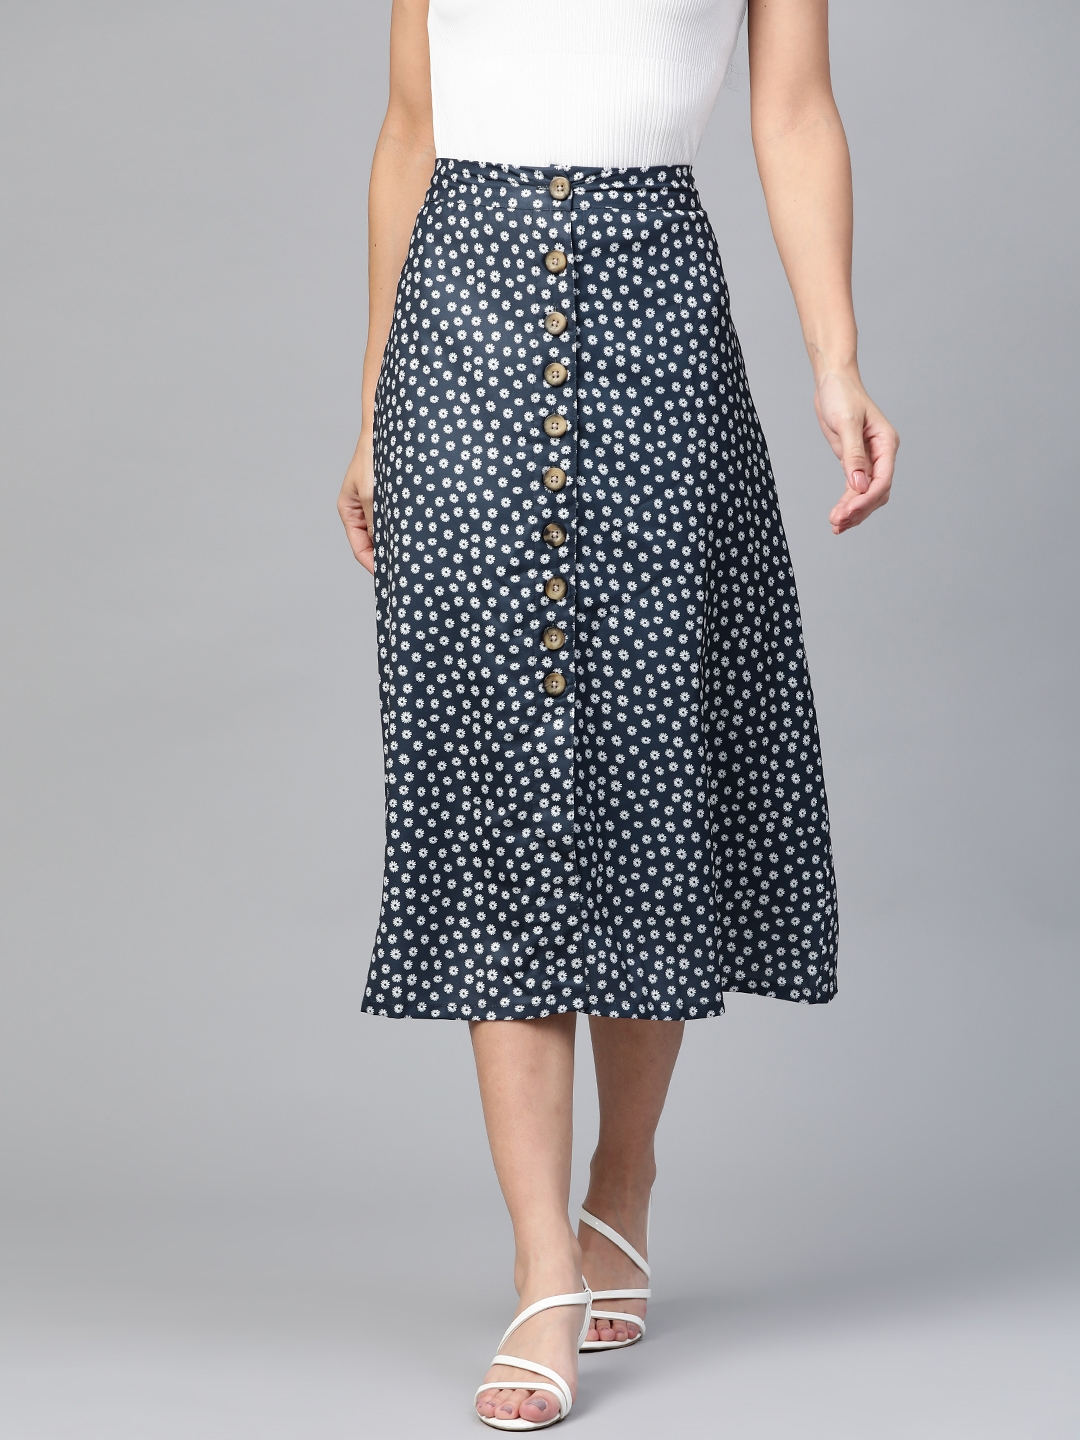 HERE NOW Women Navy   White Floral Print A Line Skirt